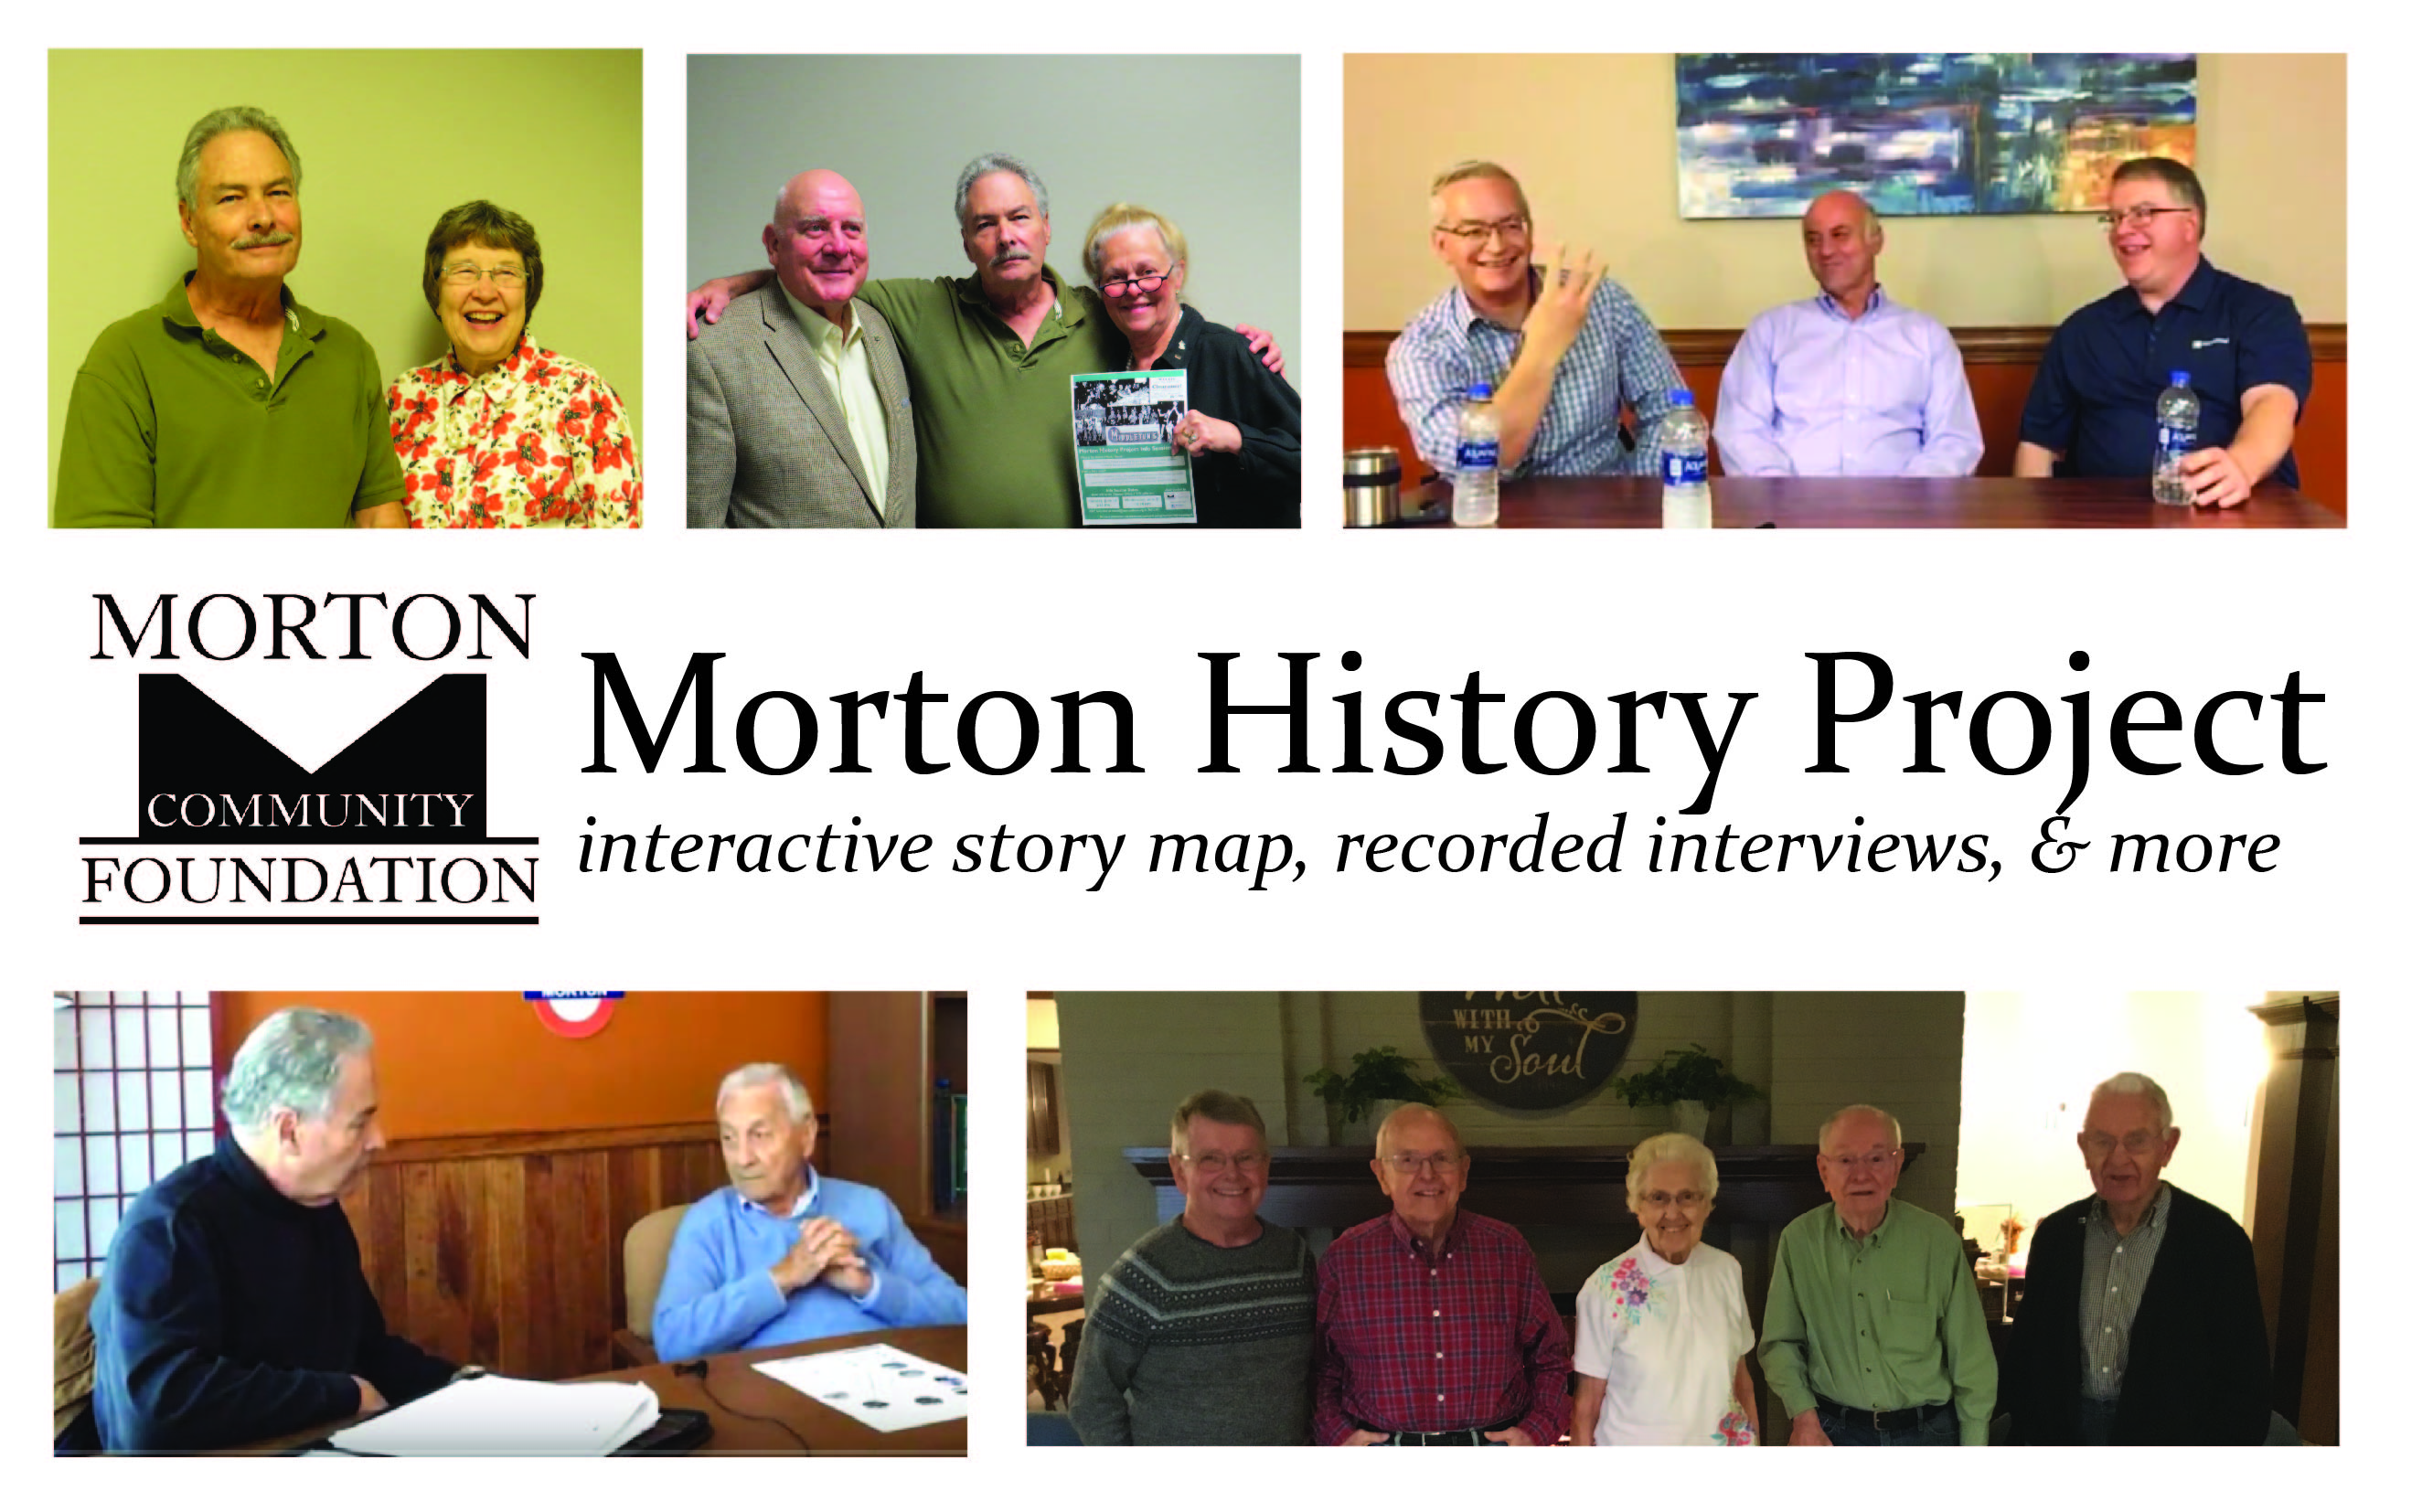 Morton-History-Project-Banner(1).jpg